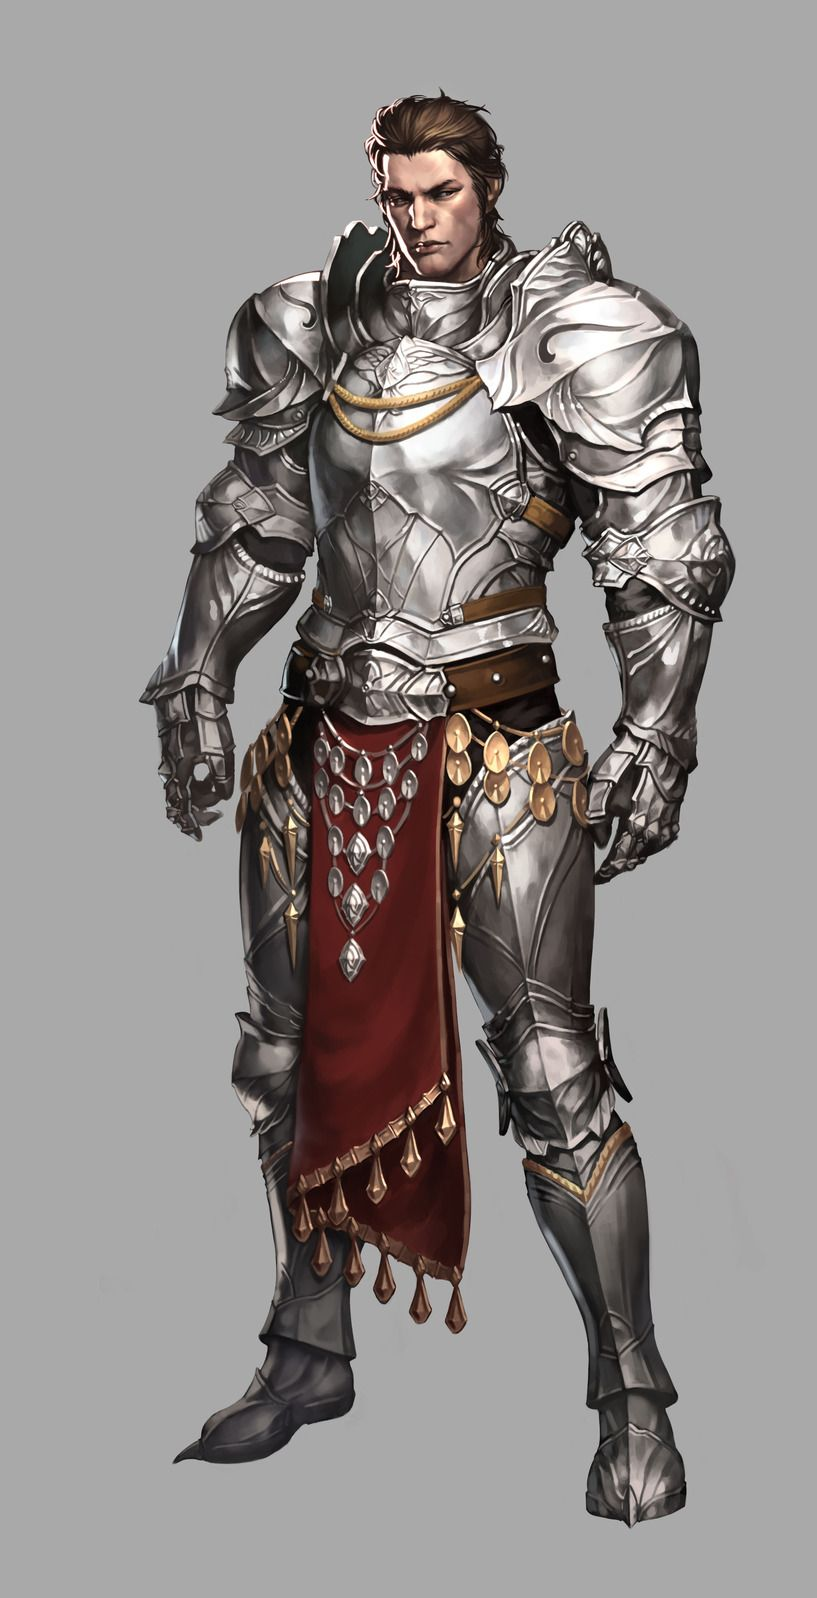 Populaire Royal Guard Concept | Fantasy/Medival Armor | Pinterest | Knight  GD41